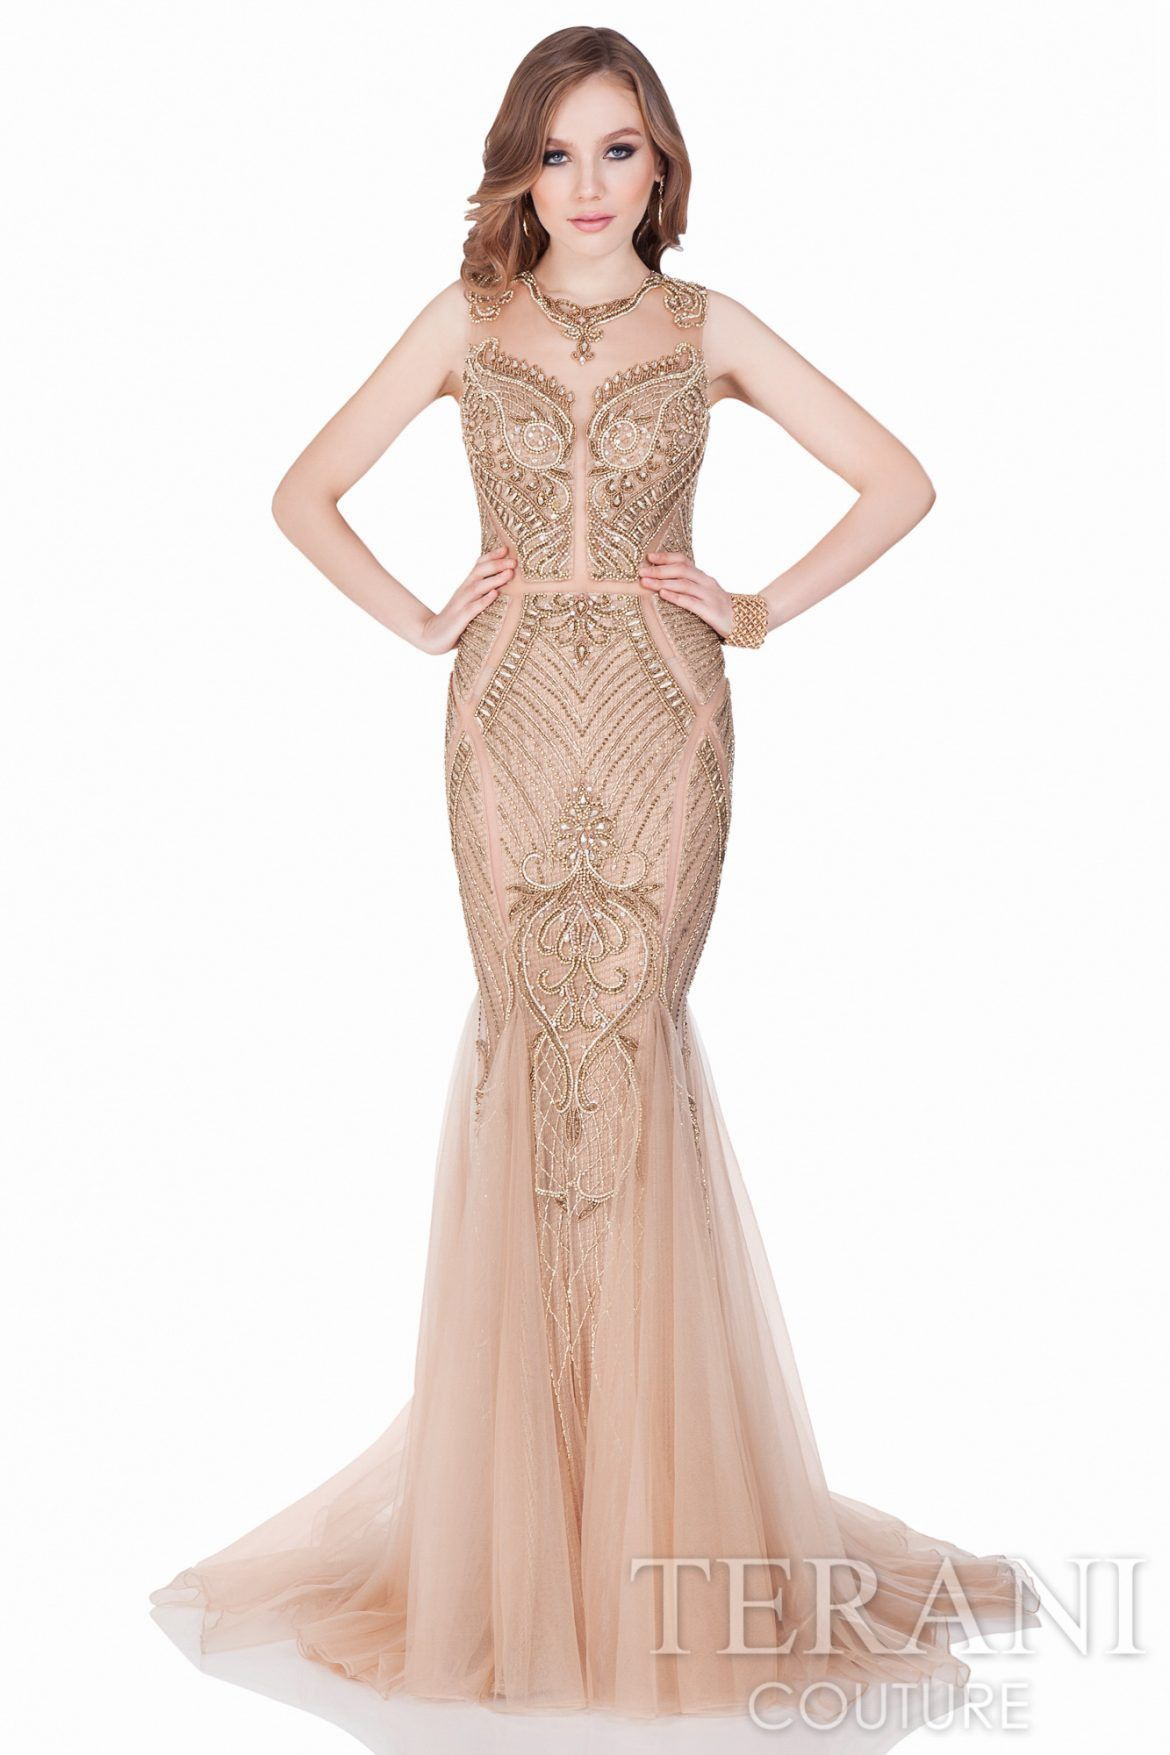 Terani sleeveless gown with beaded pattern gowns bodice and red